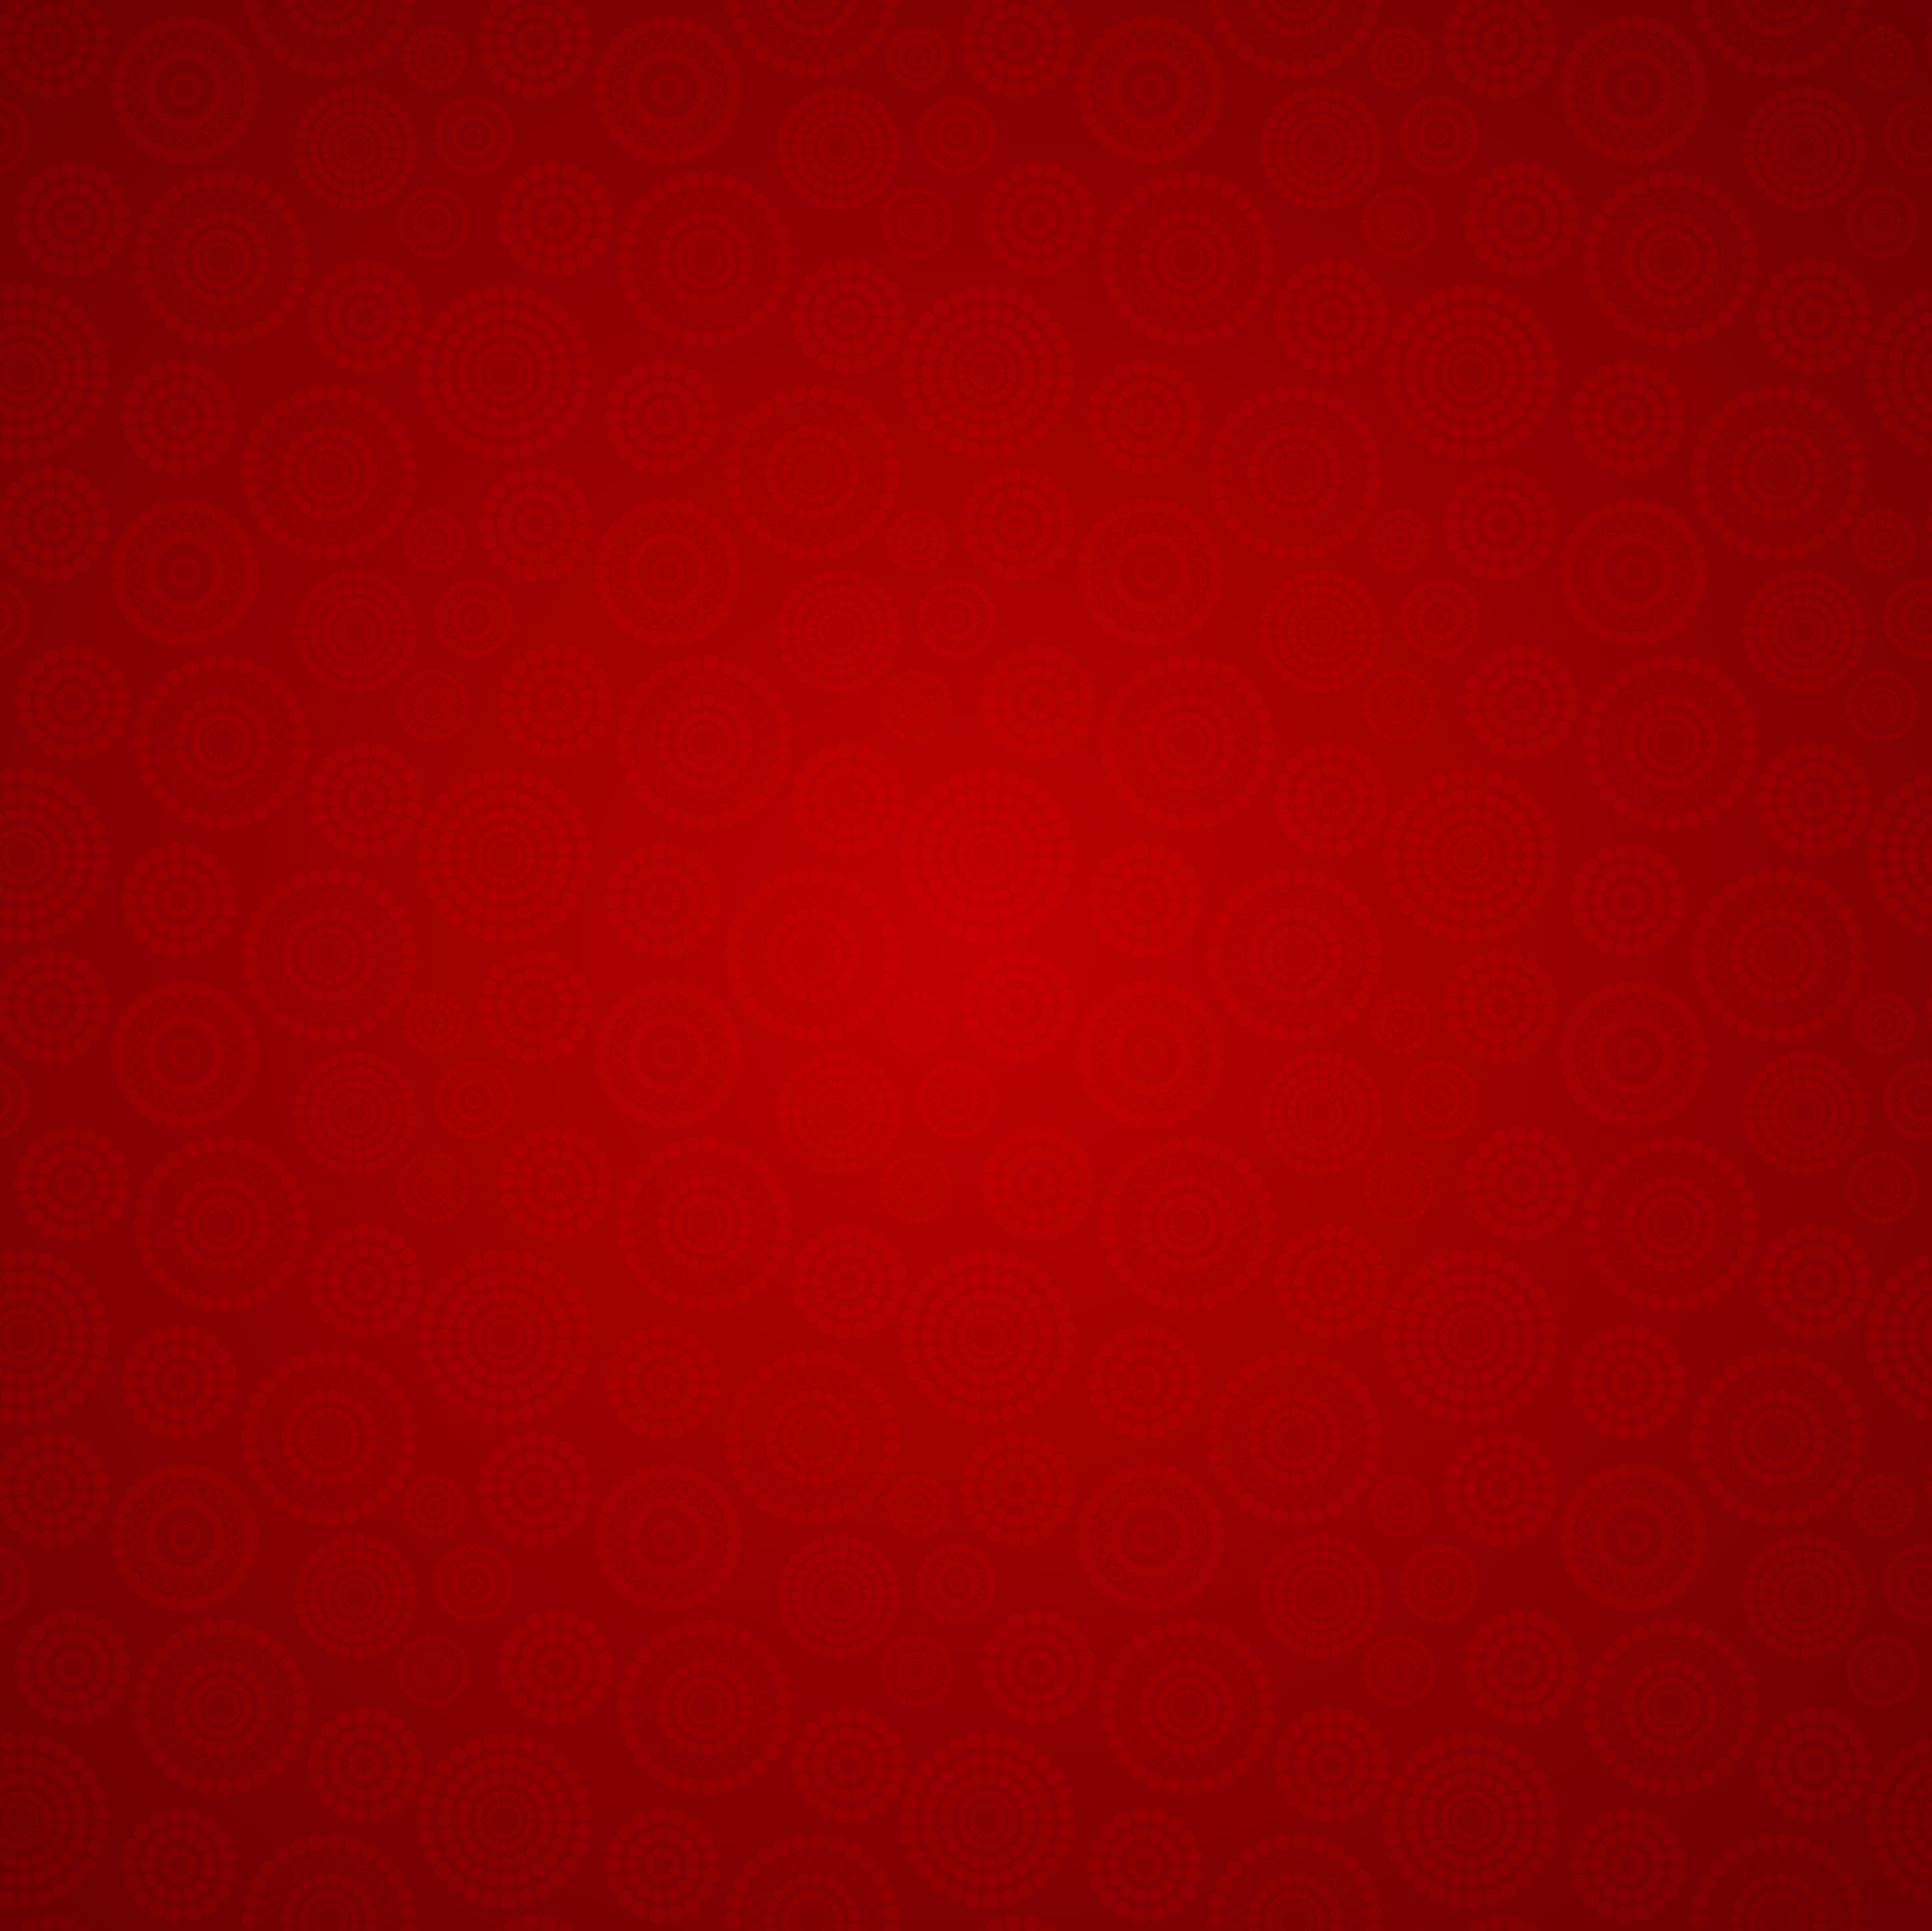 Ornamental Red Background.